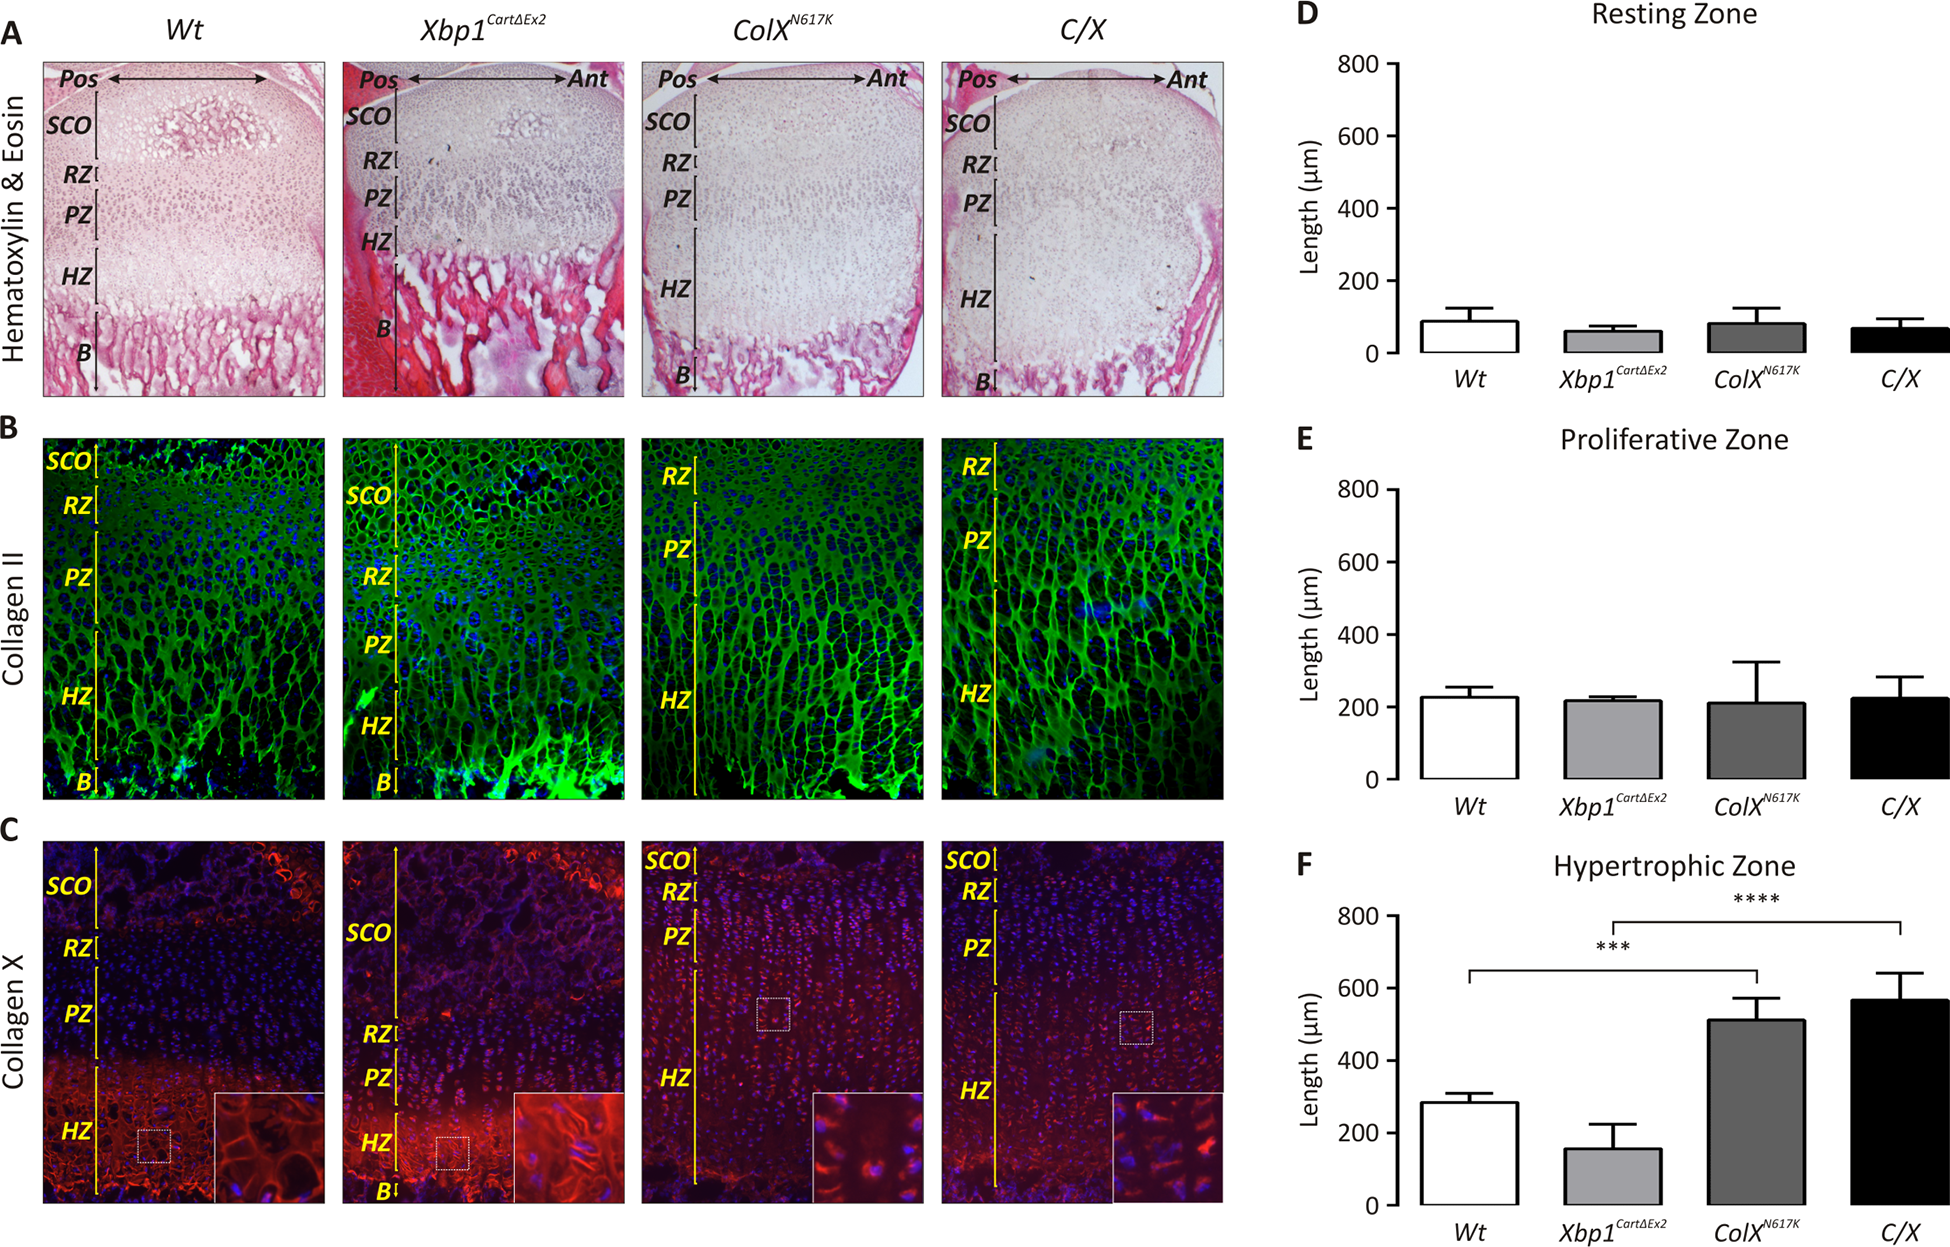 Ablation of XBP1 does not significantly affect the MCDS phenotype in <i>C/X</i> mice.